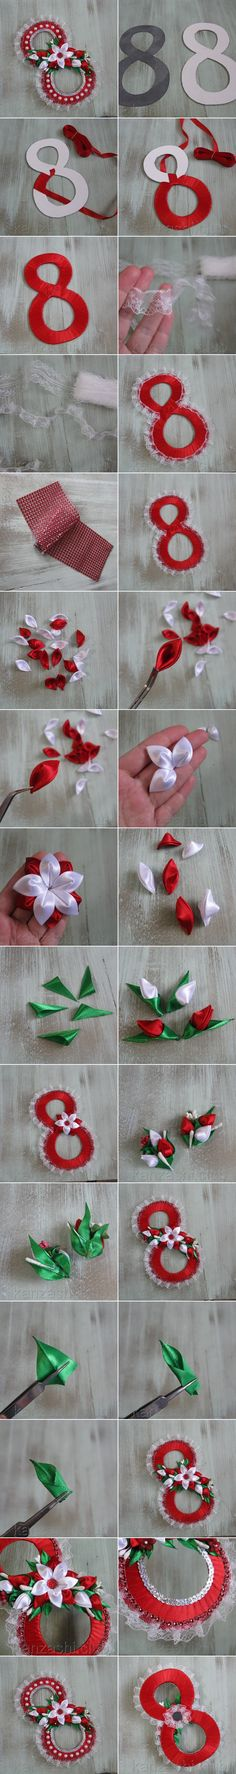 Восьмерка #канзаши на магните к празднику #8марта #kanzashi Christmas Diy, Christmas Wreaths, Diy And Crafts, Arts And Crafts, Birthday Cards For Mum, Bracelet Crafts, Cardboard Crafts, Mothers Day Crafts, 8th Of March